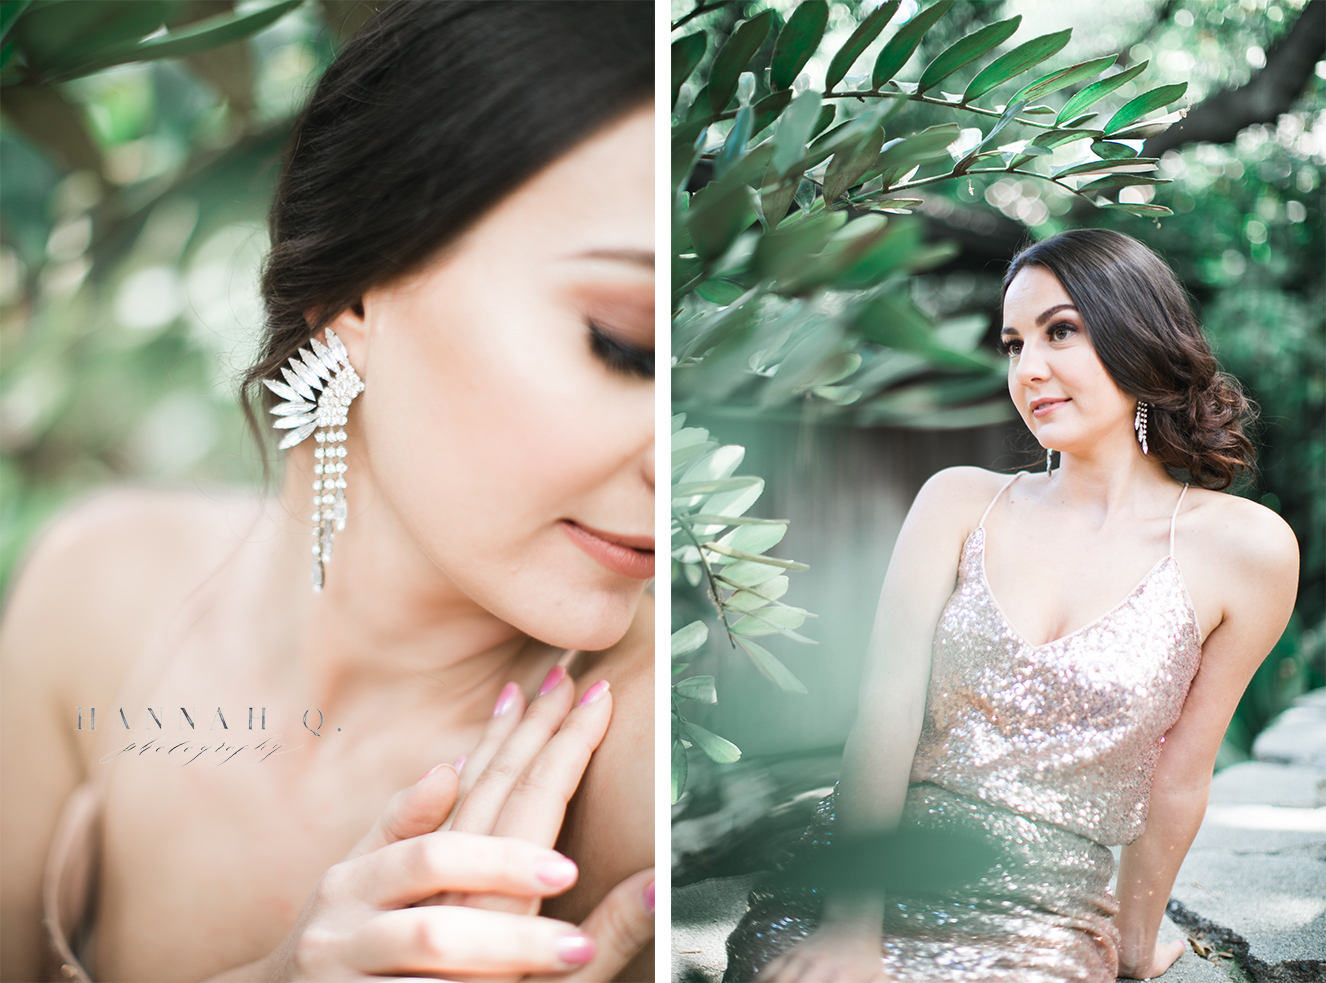 Loved playing with greenery in photos this year and adding the extra bokeh blur.